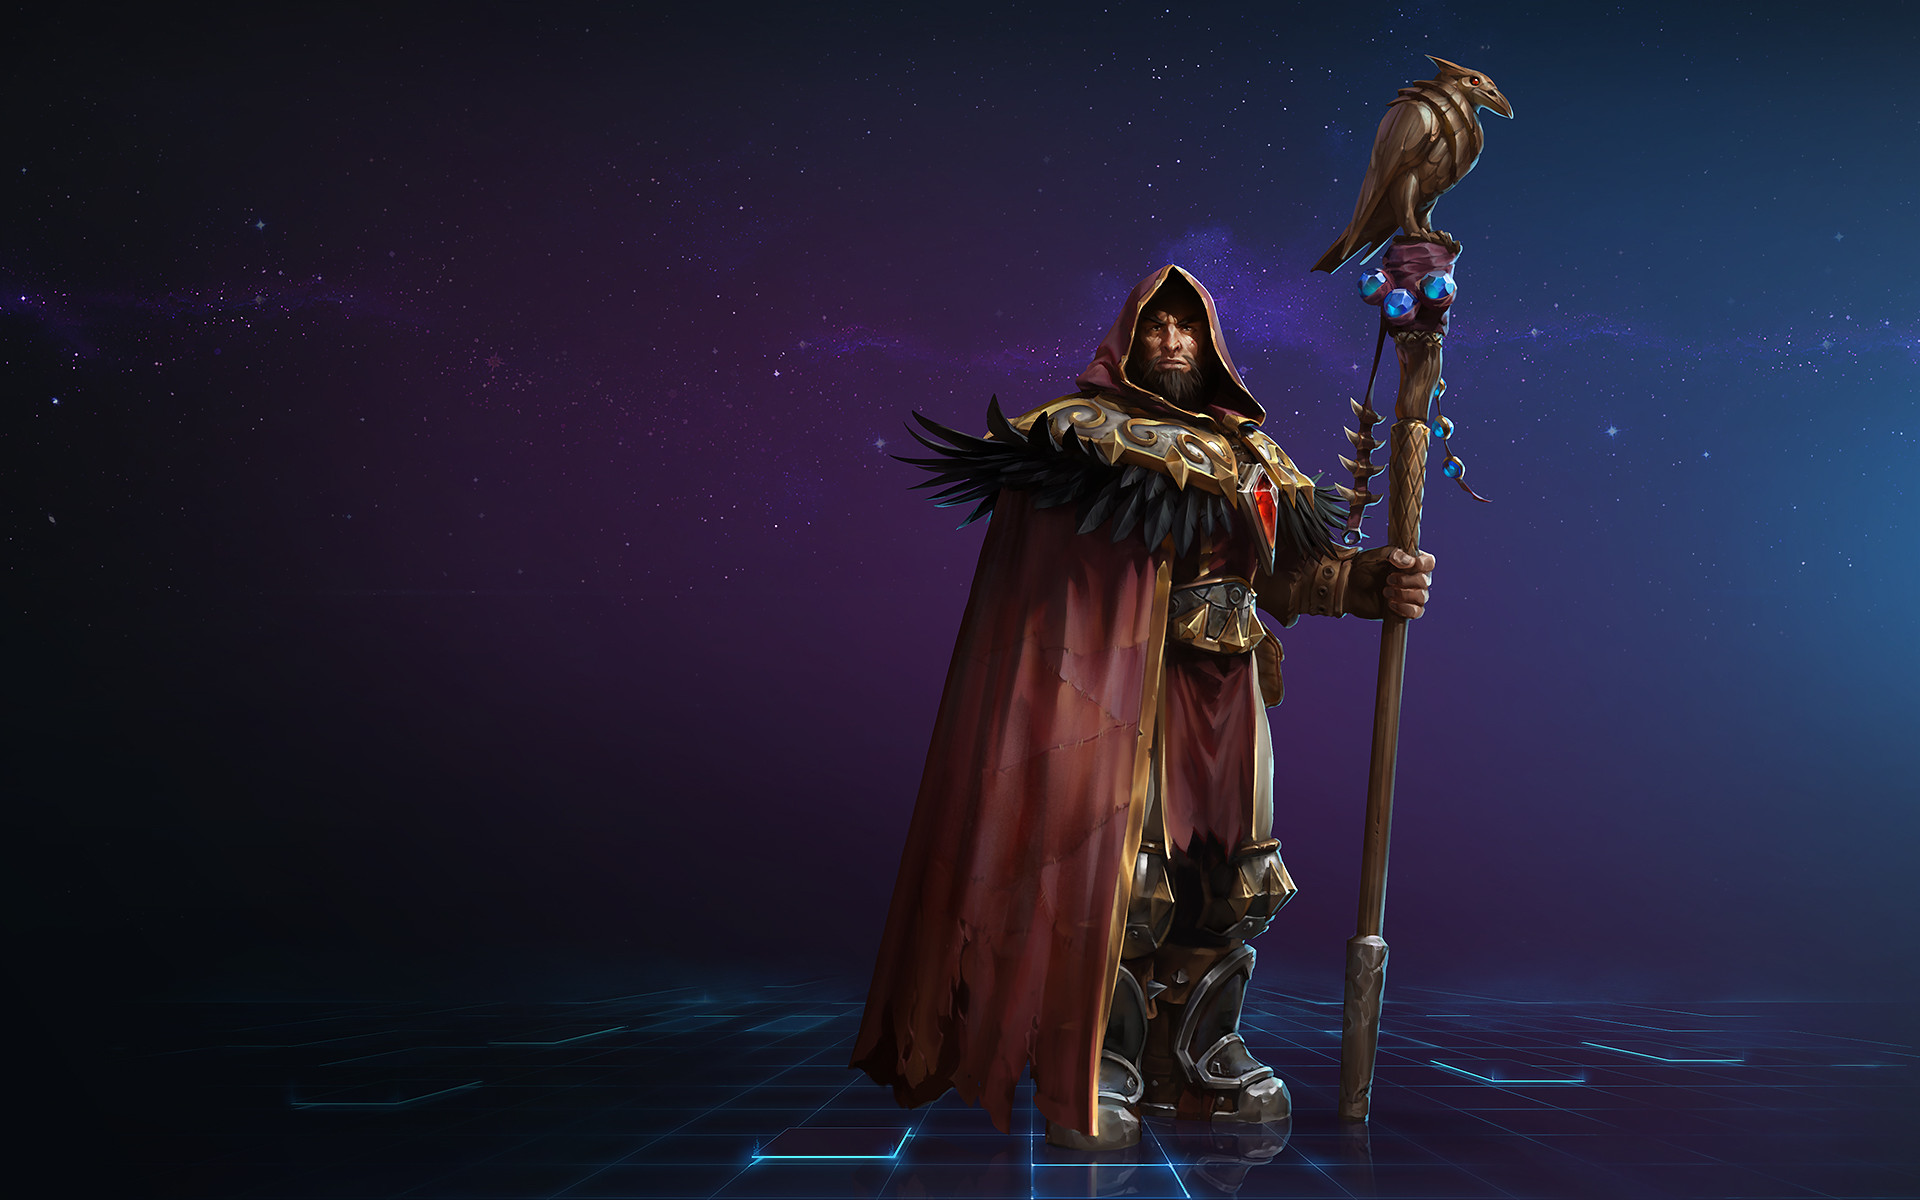 heroes of storm personajes Medich